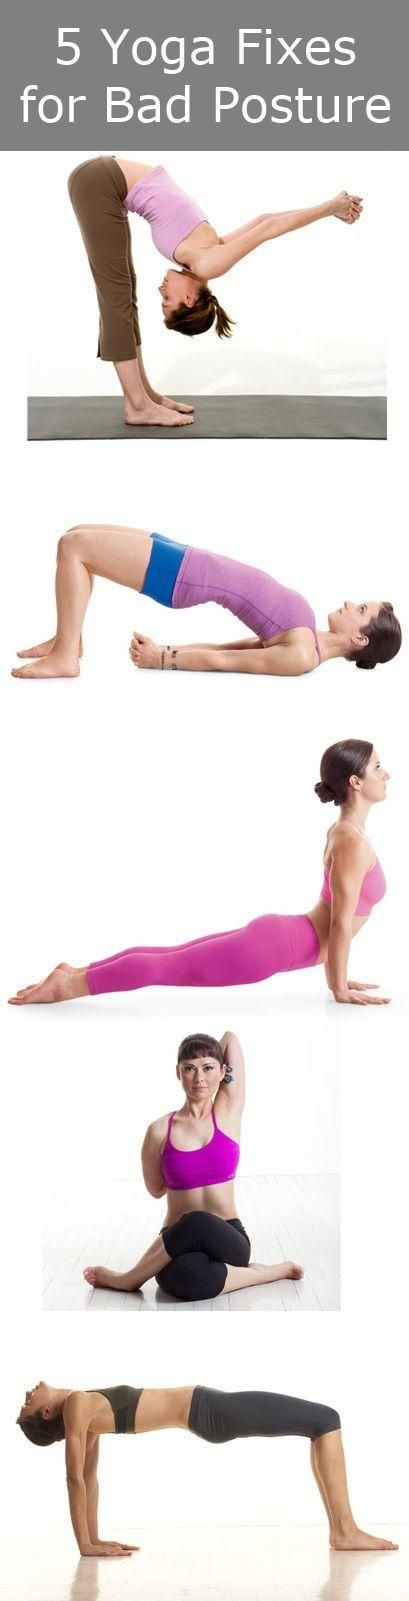 5 Yoga Fixes for Bad Posture. I used to have good posture before my surgeries. I wonder if these stretches would help?